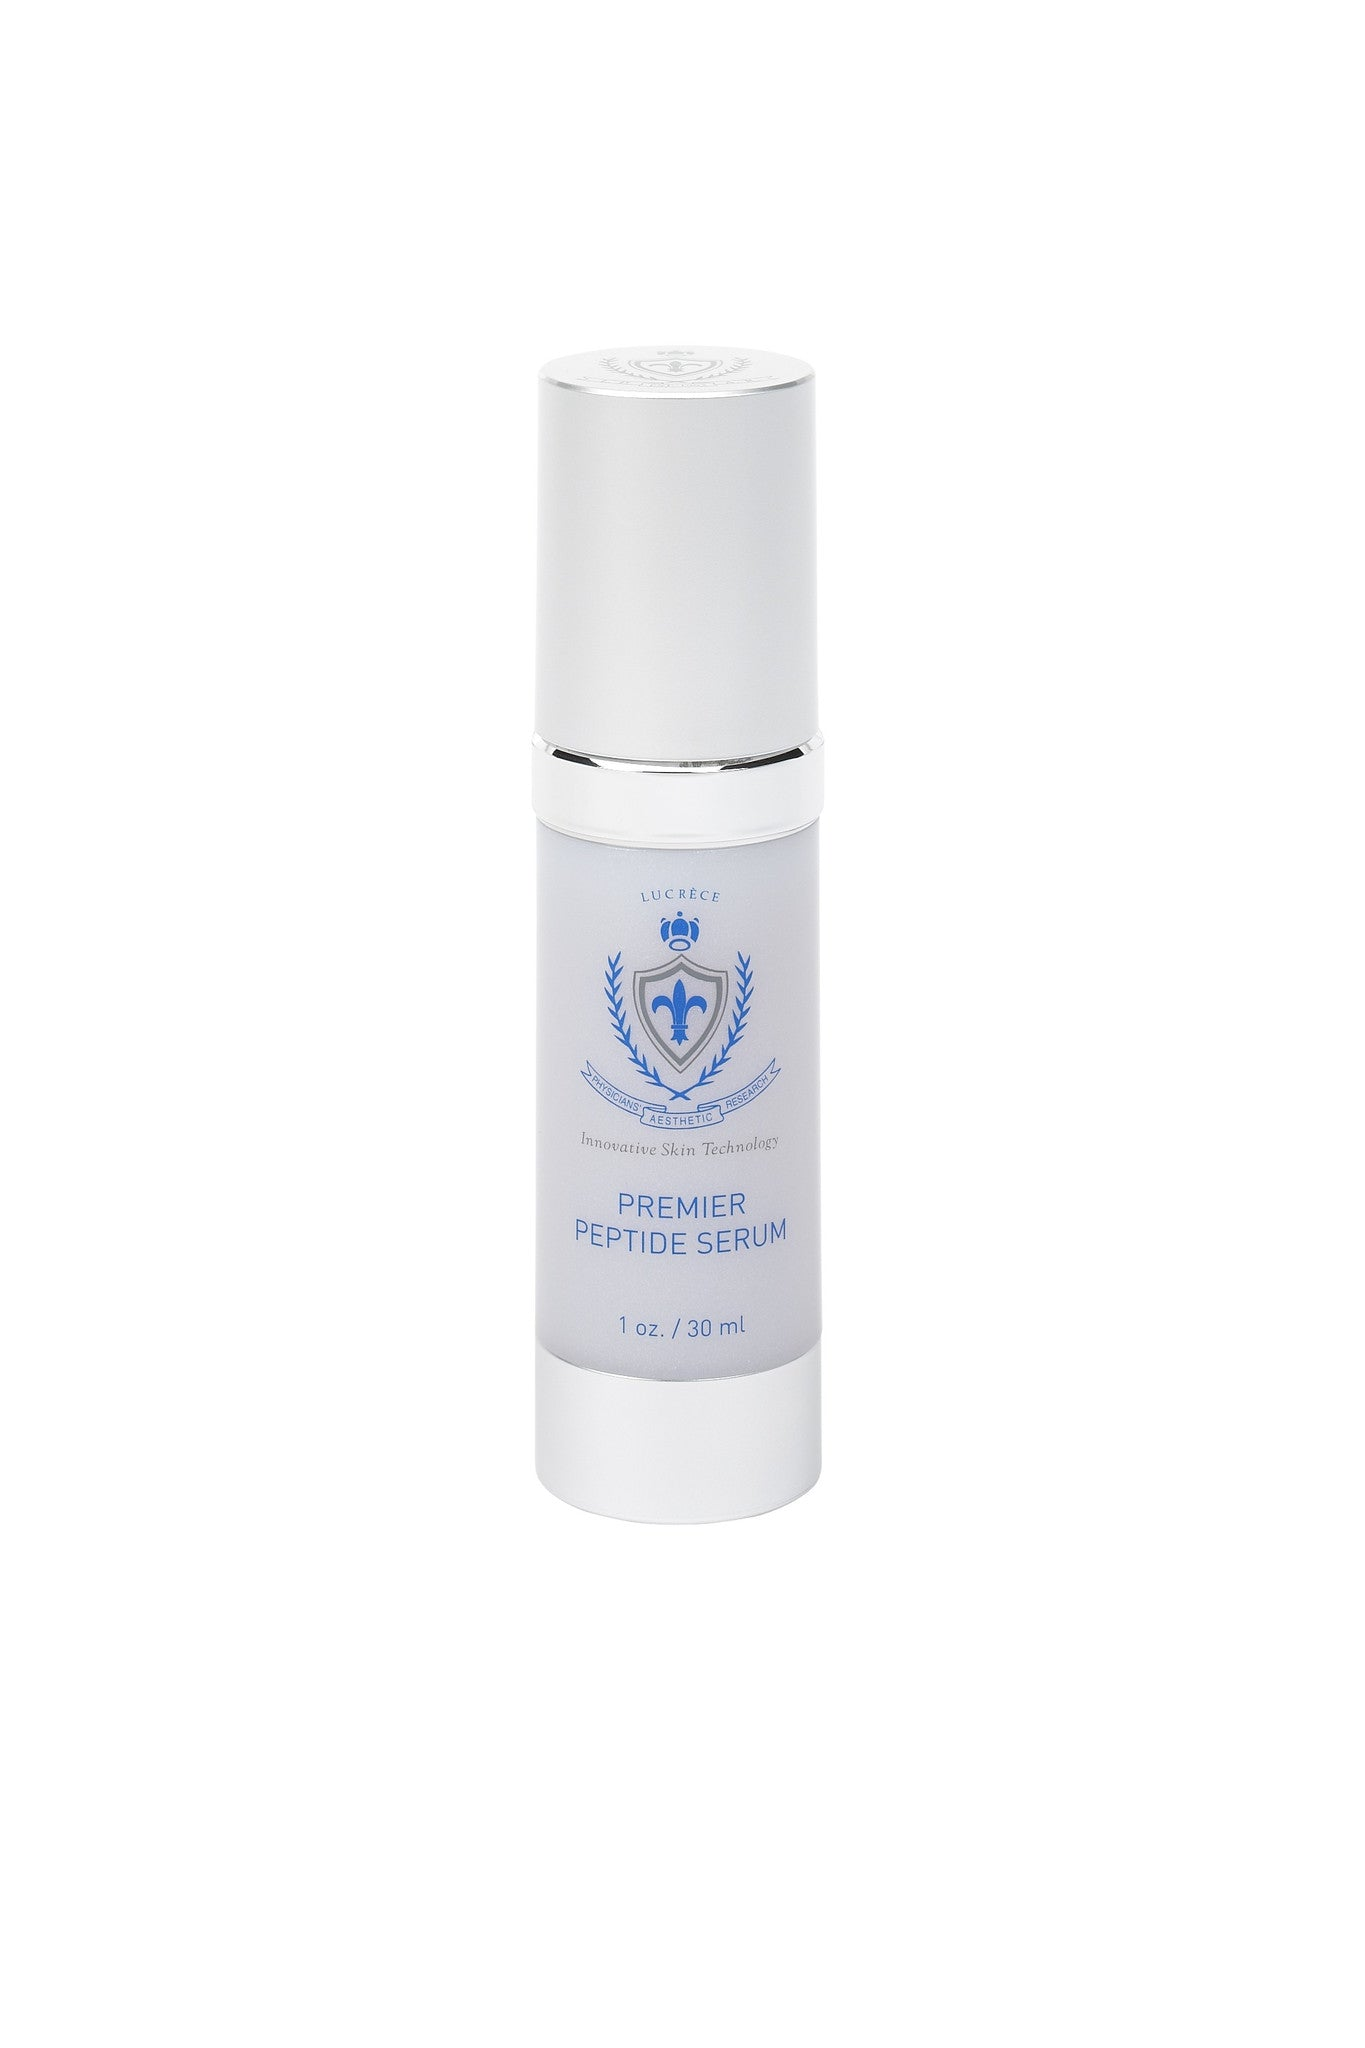 Premier Peptide Serum (ultra-potent anti-wrinkle serum)